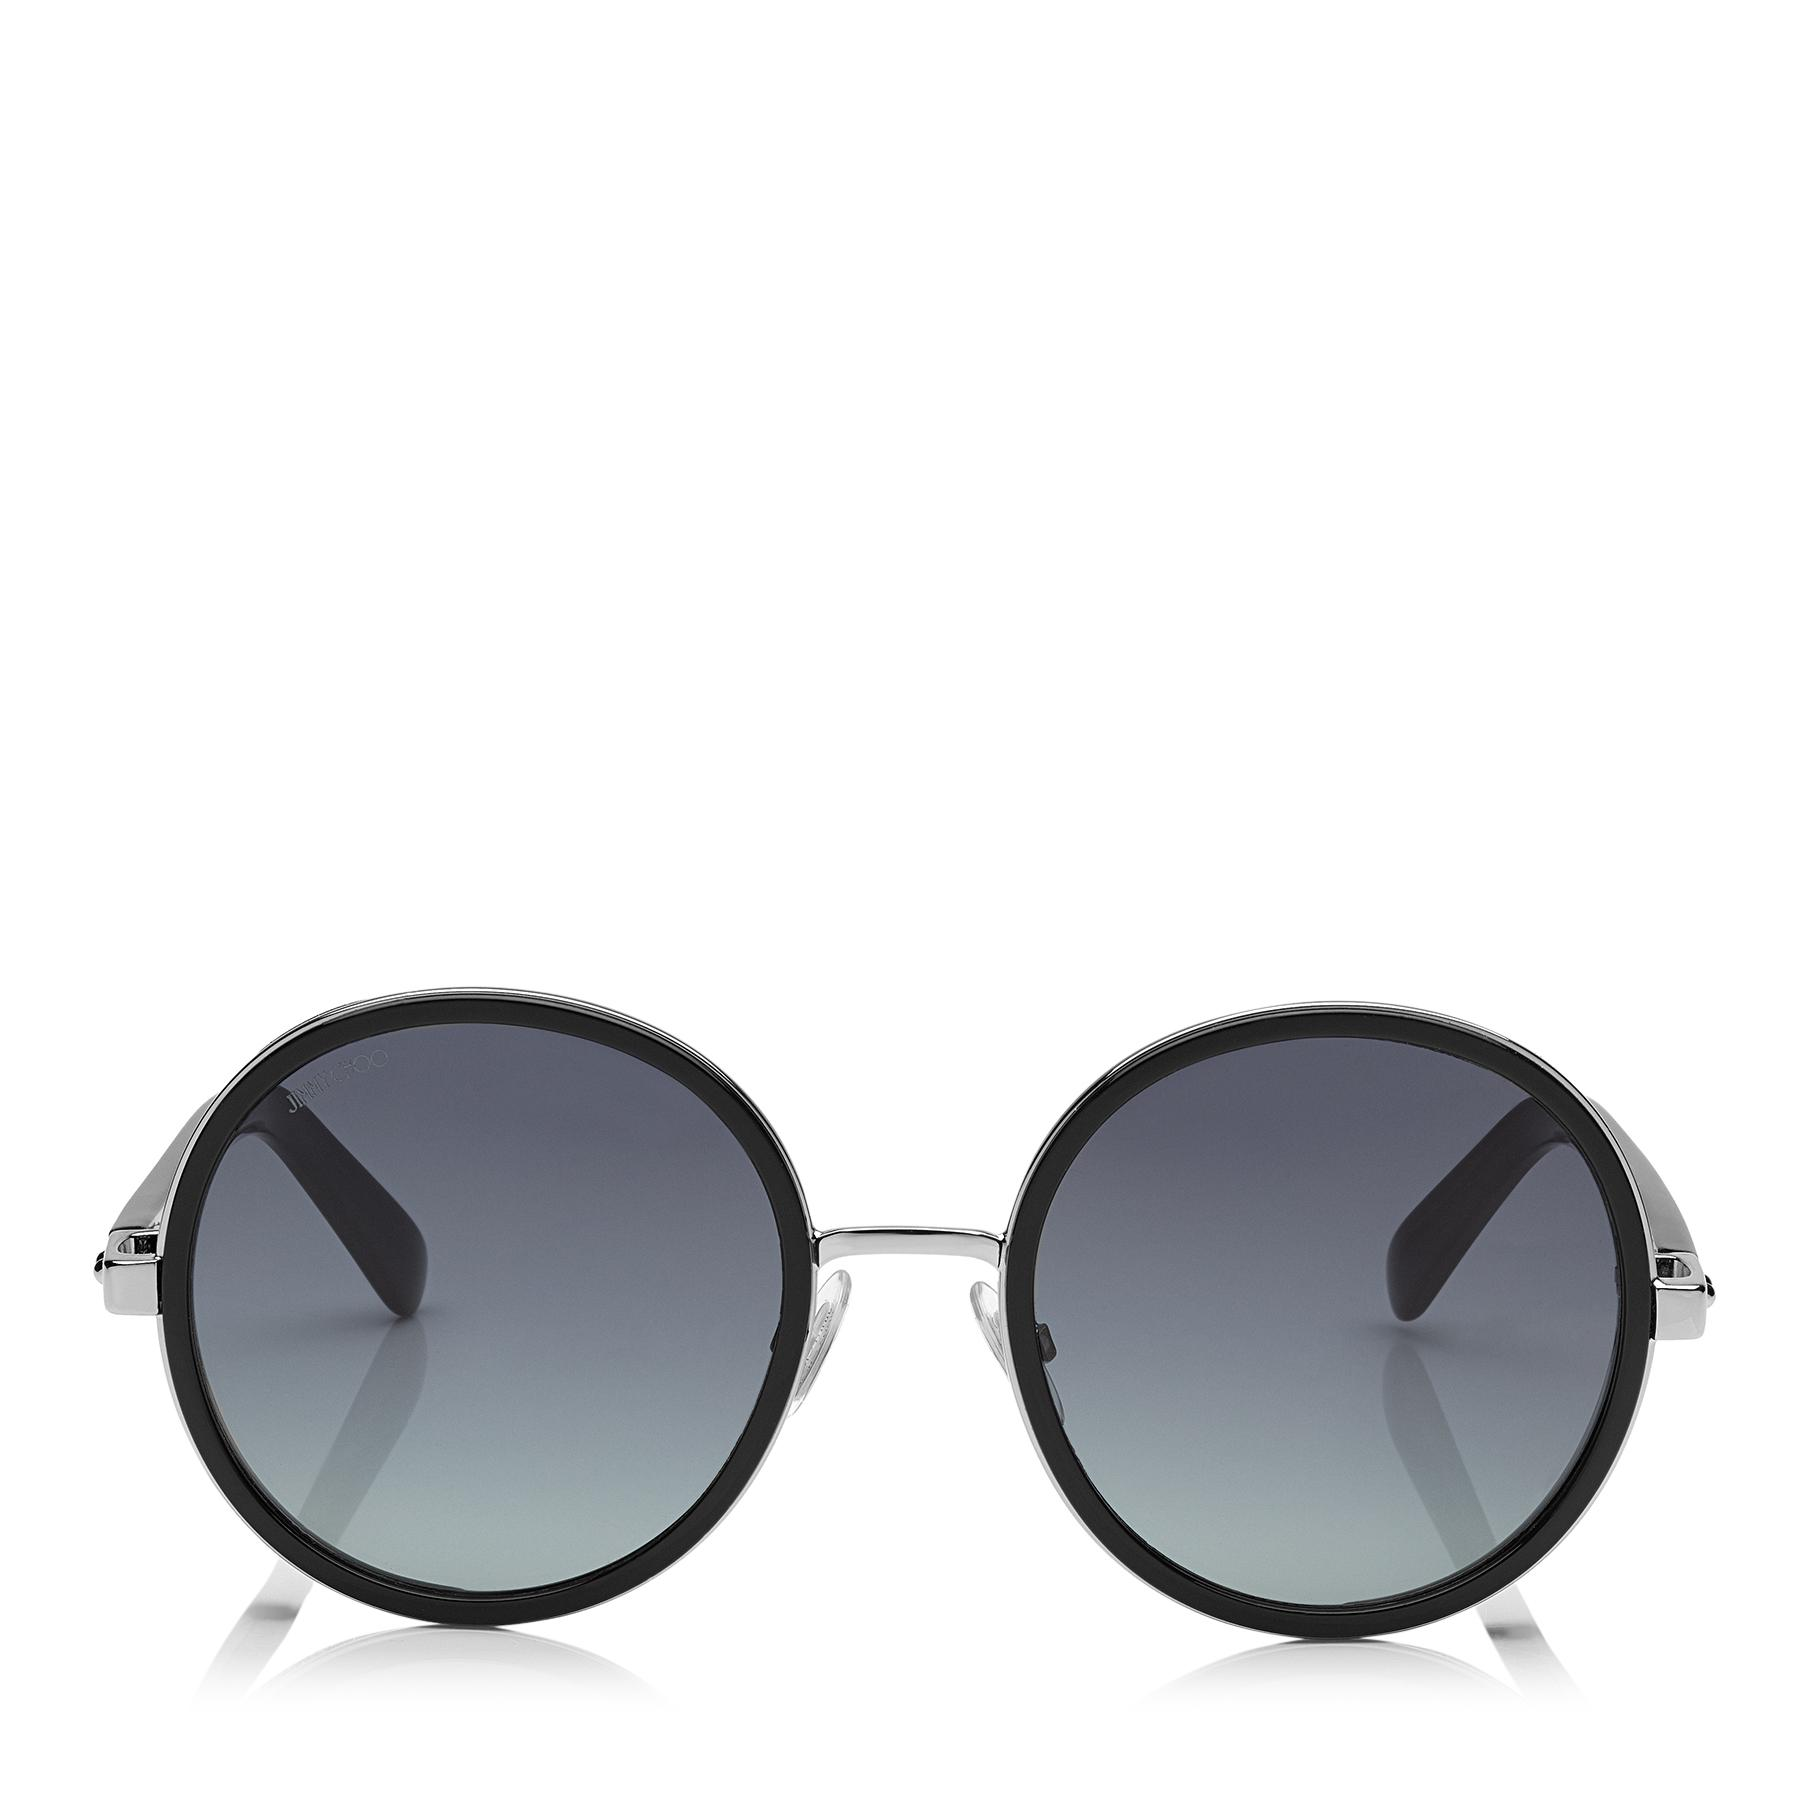 eb8015c7715 Jimmy Choo - Multicolor Andie Black Acetate Round Framed Sunglasses With  Silver Lurex Detailing - Lyst. View fullscreen